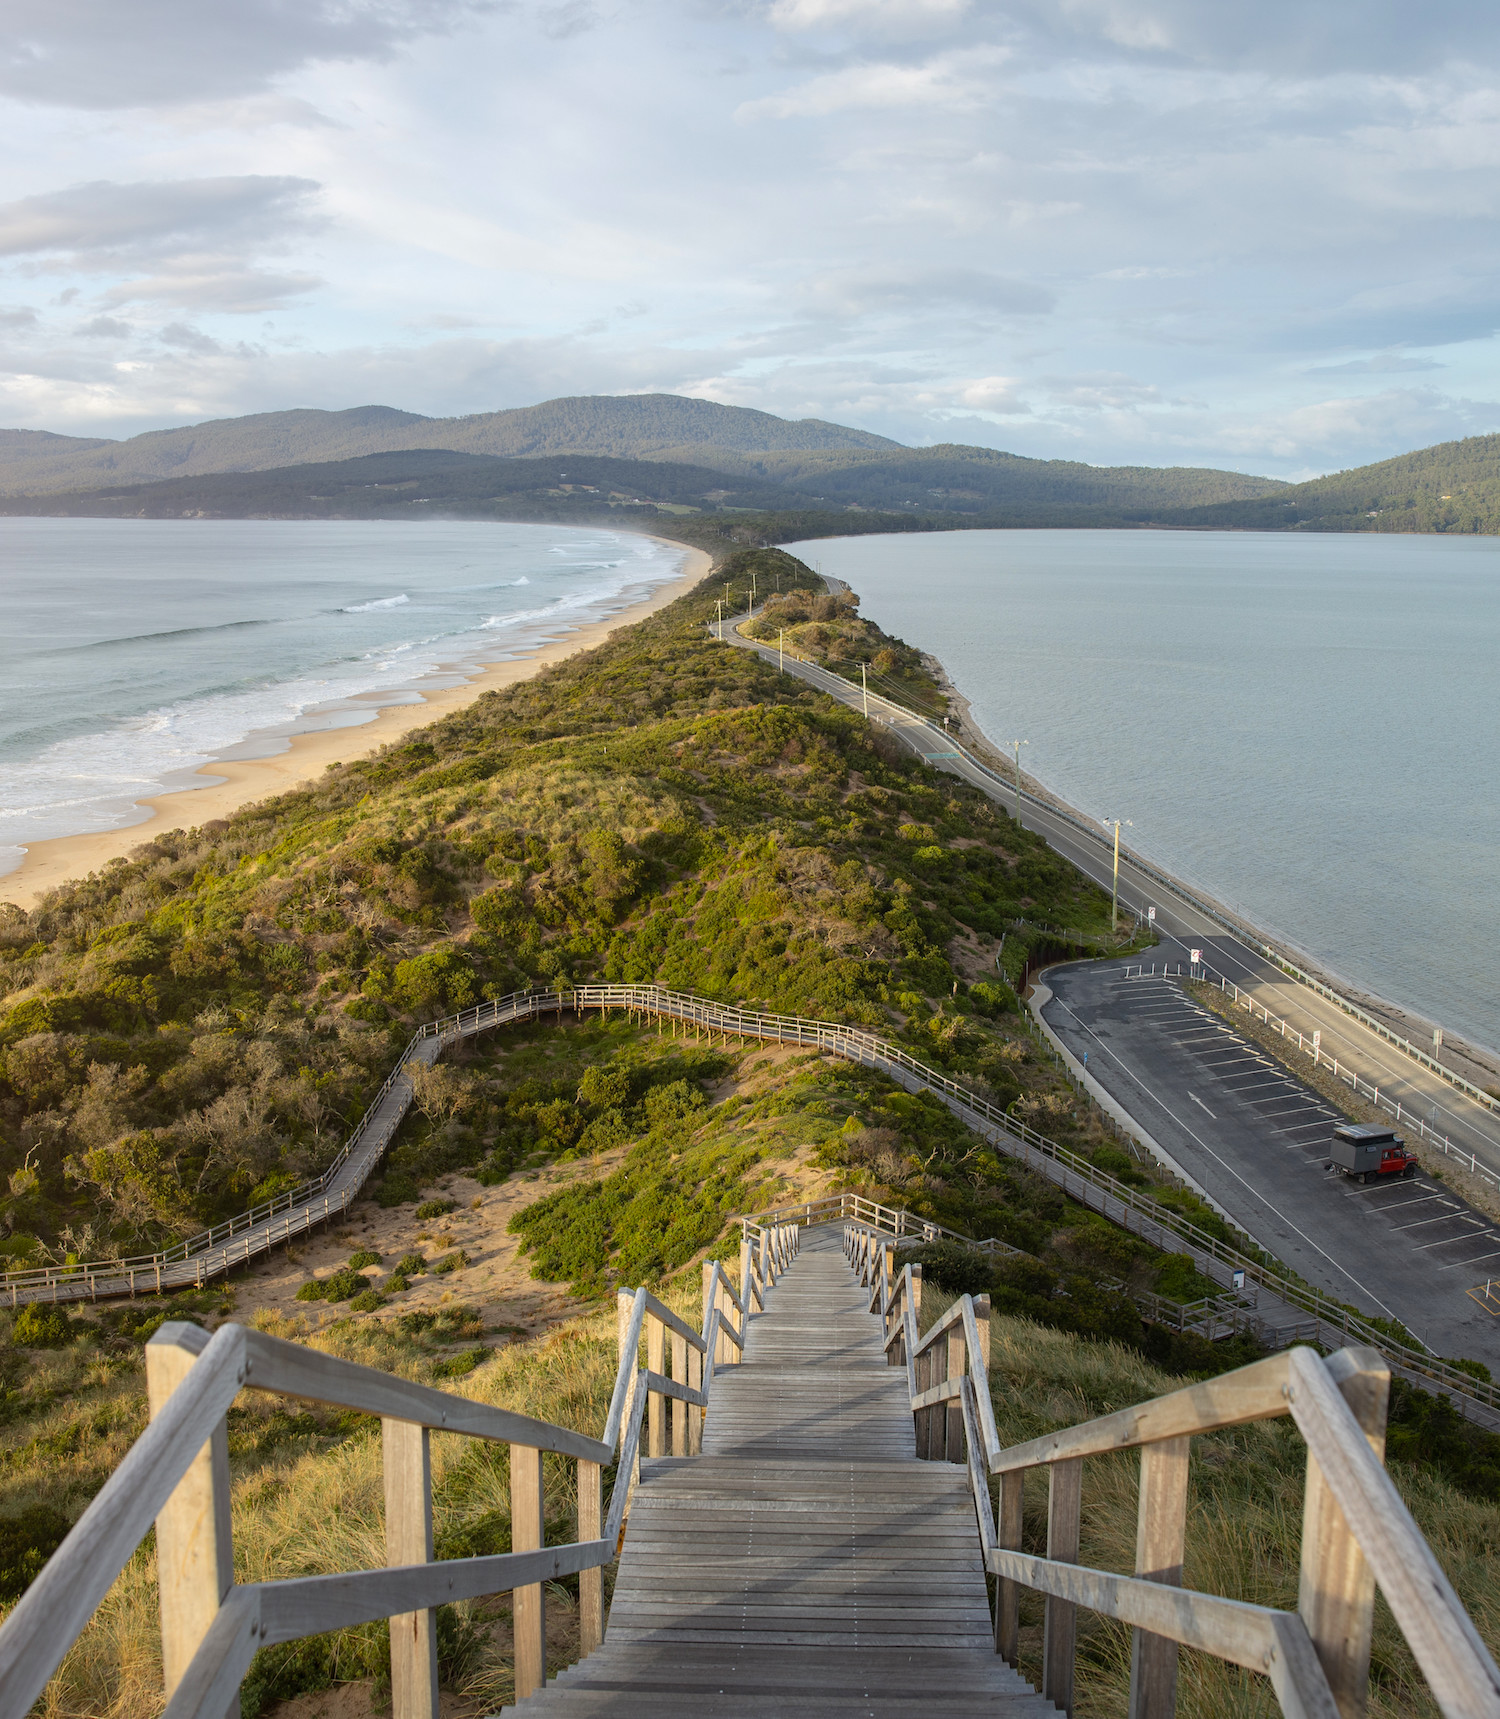 A shot from the top of the stairs at The Neck in Tasmania, Australia.